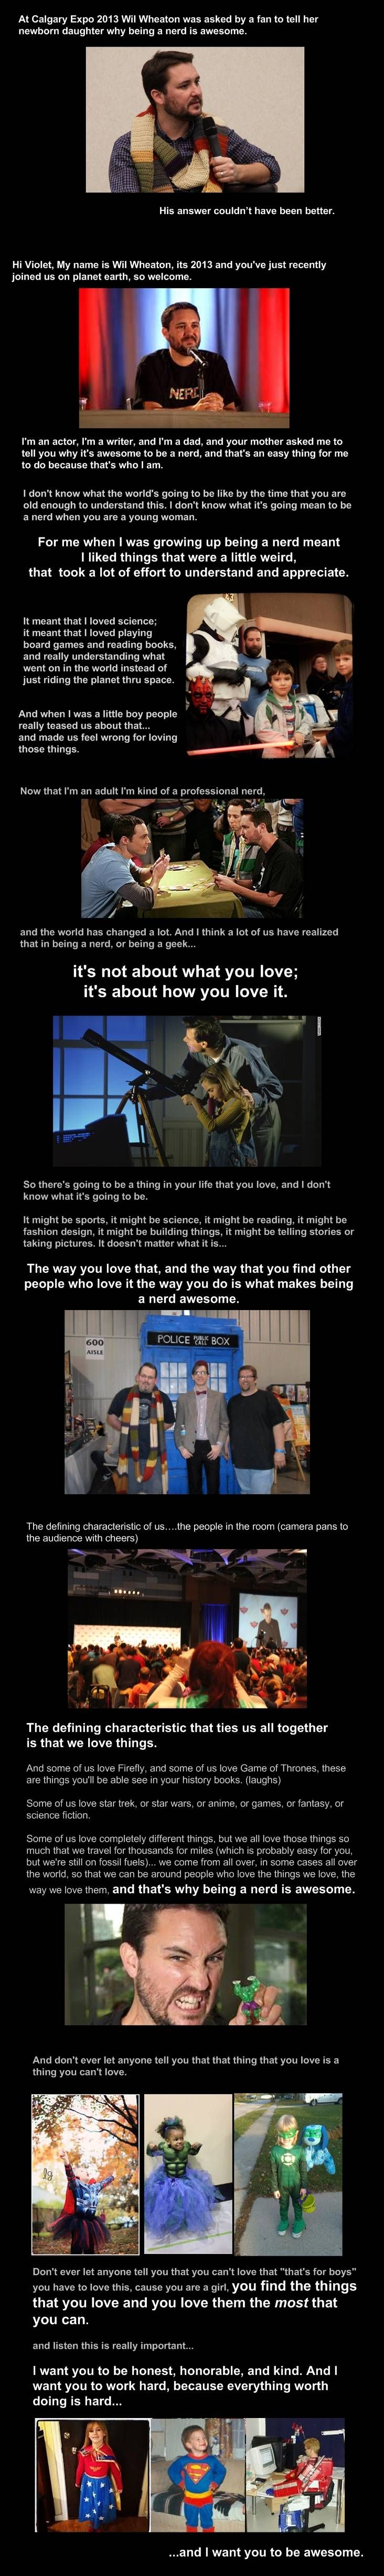 Absolutely the most perfect answer by Wil Wheaton.